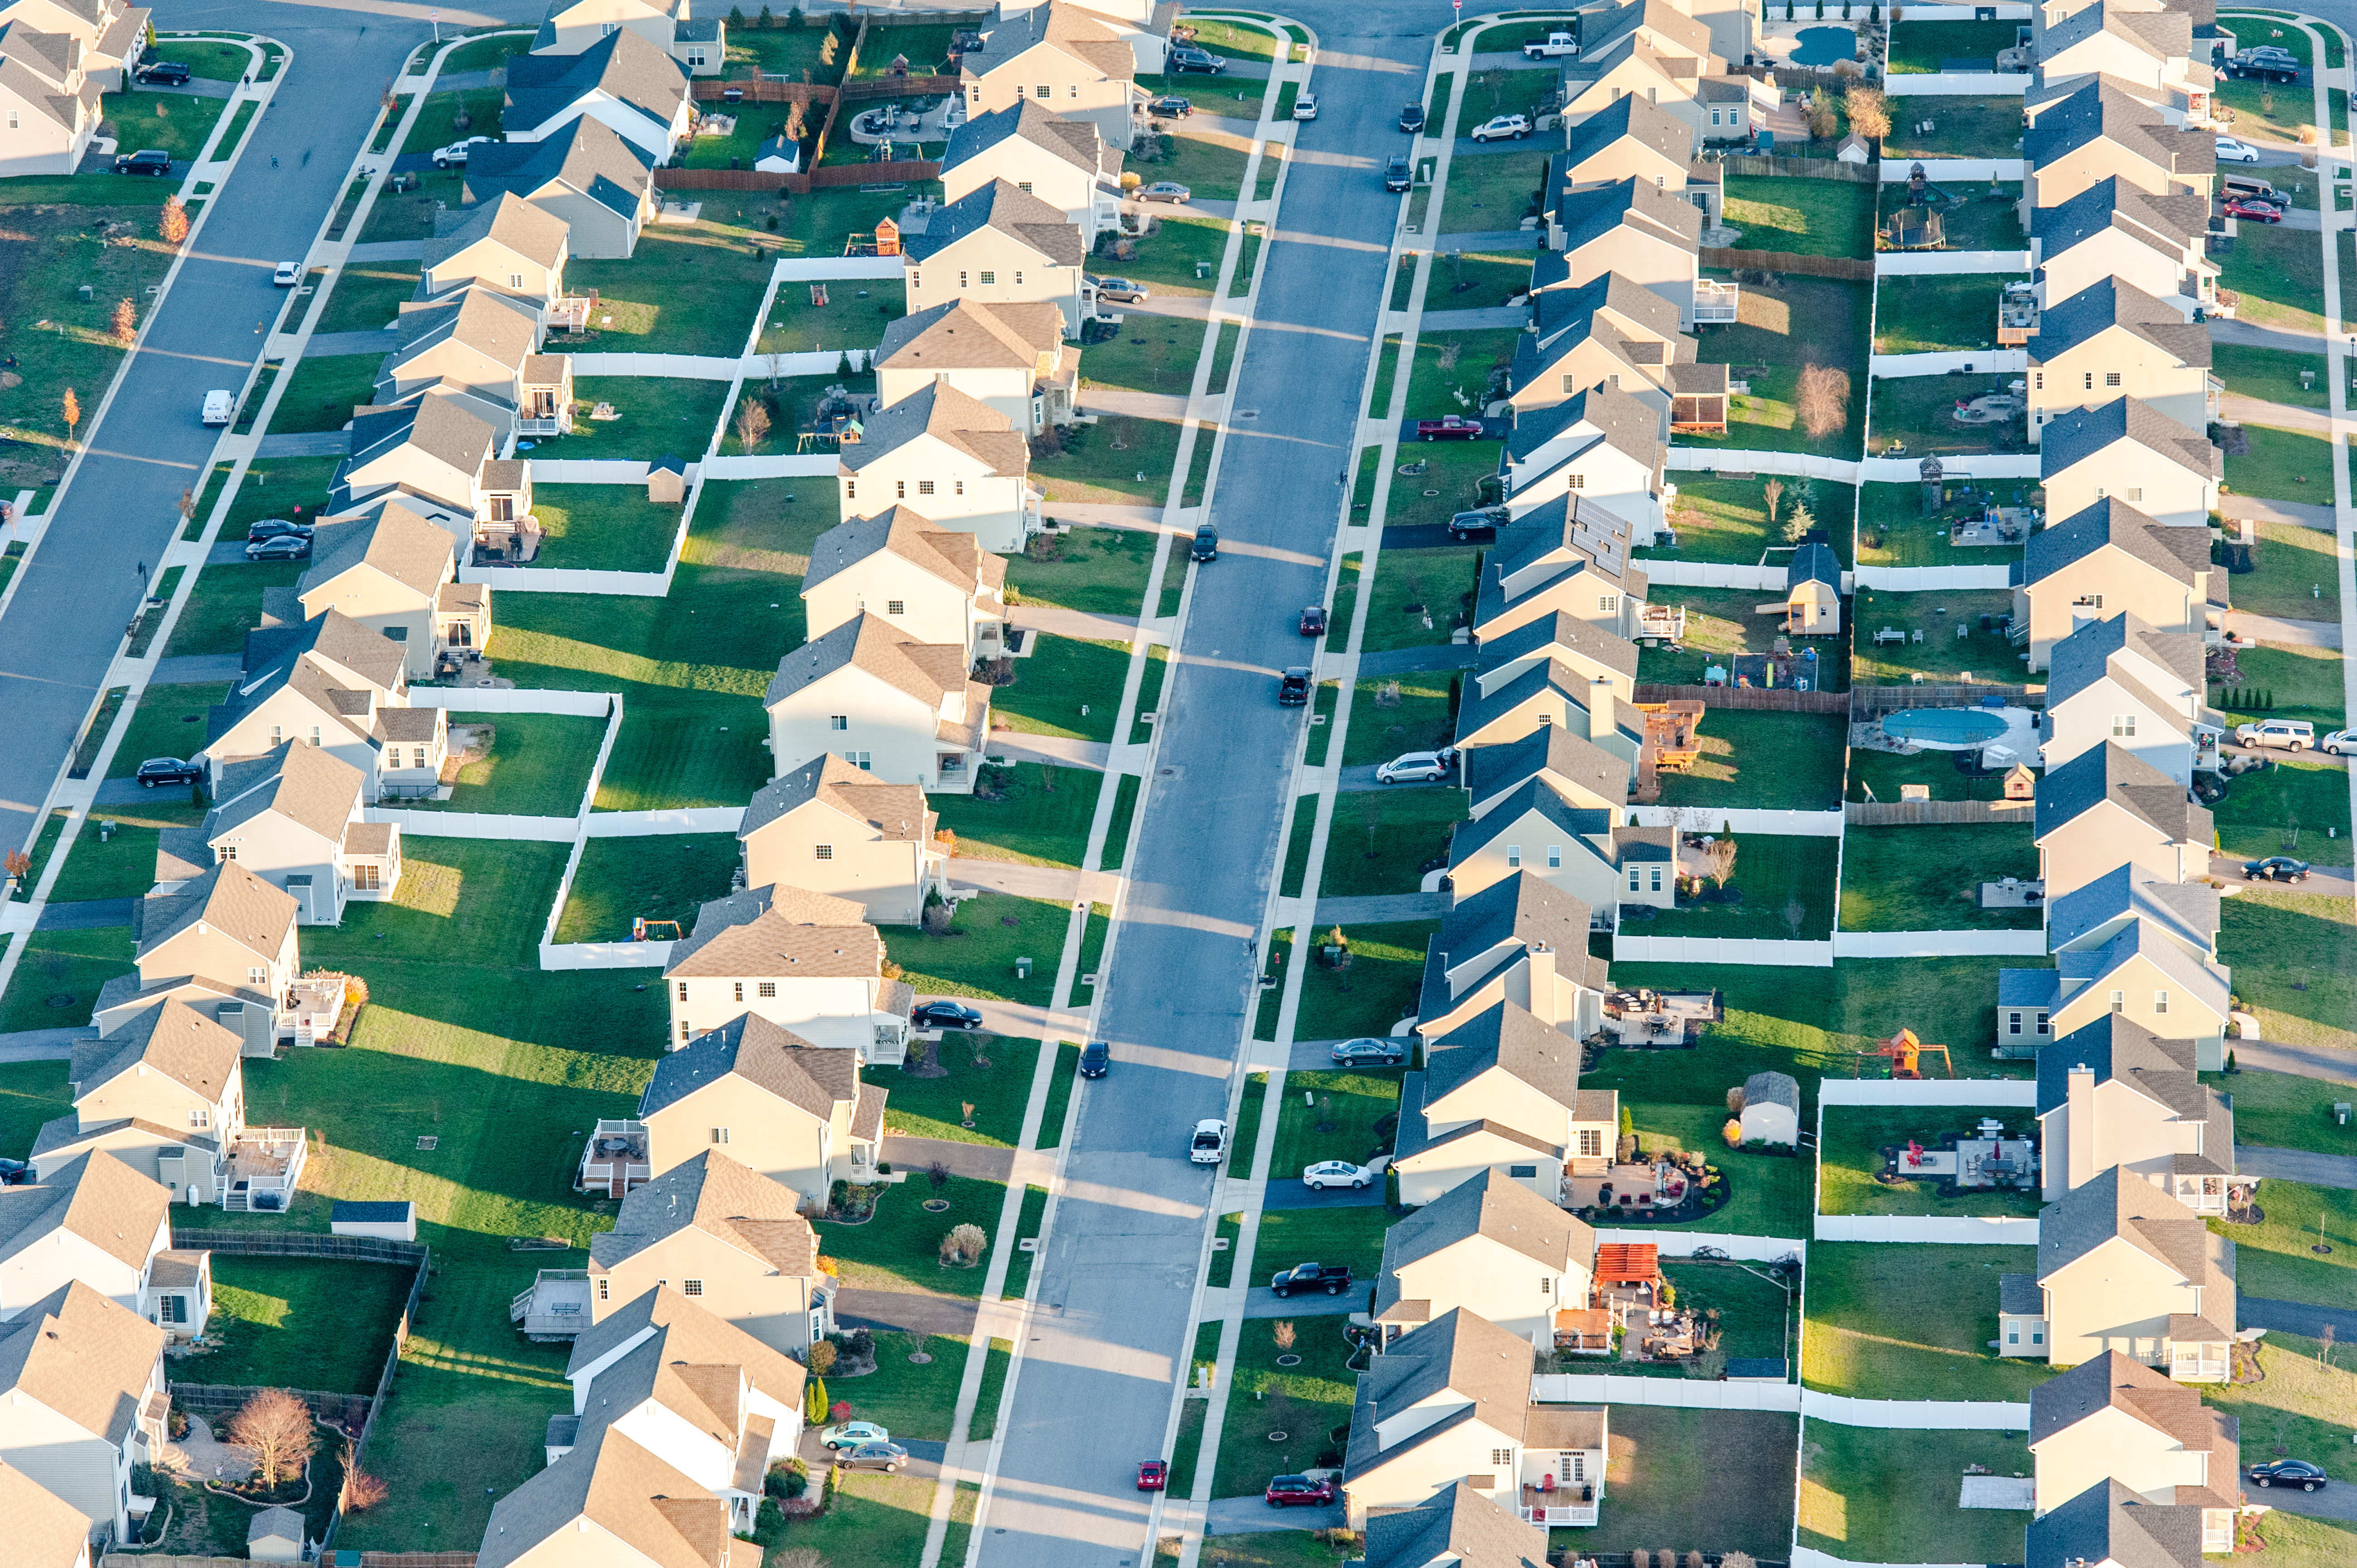 Aerial view of rows of houses over Centerville, Maryland.